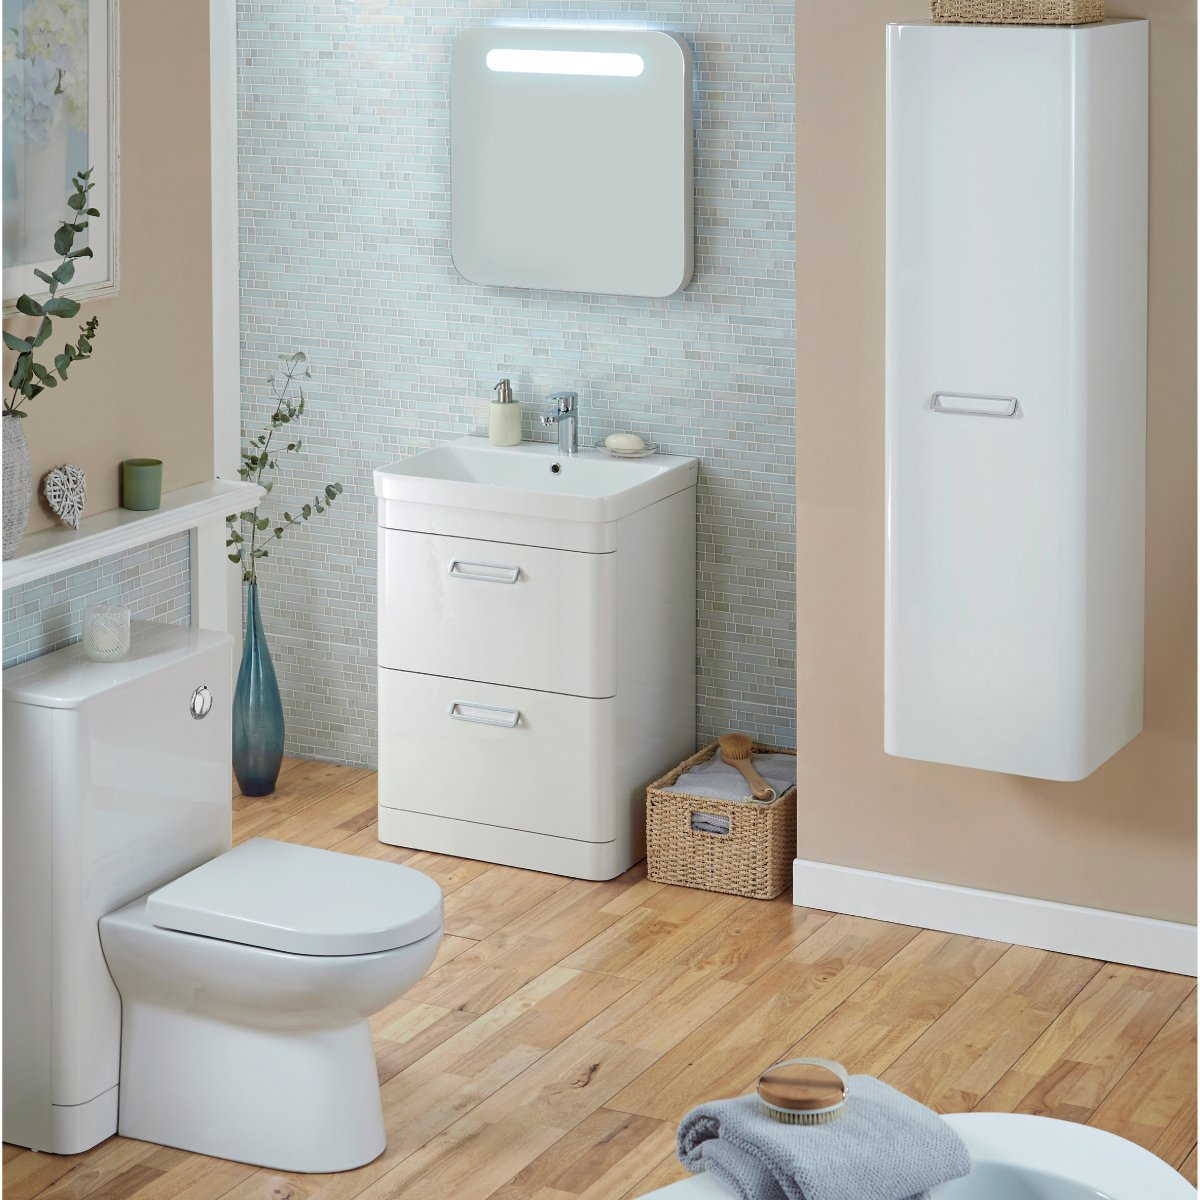 Metro High Gloss White Tallboy Wall Mounted Bathroom Cabinet Cupboard  Furniture Unit: Amazon: Kitchen & Home